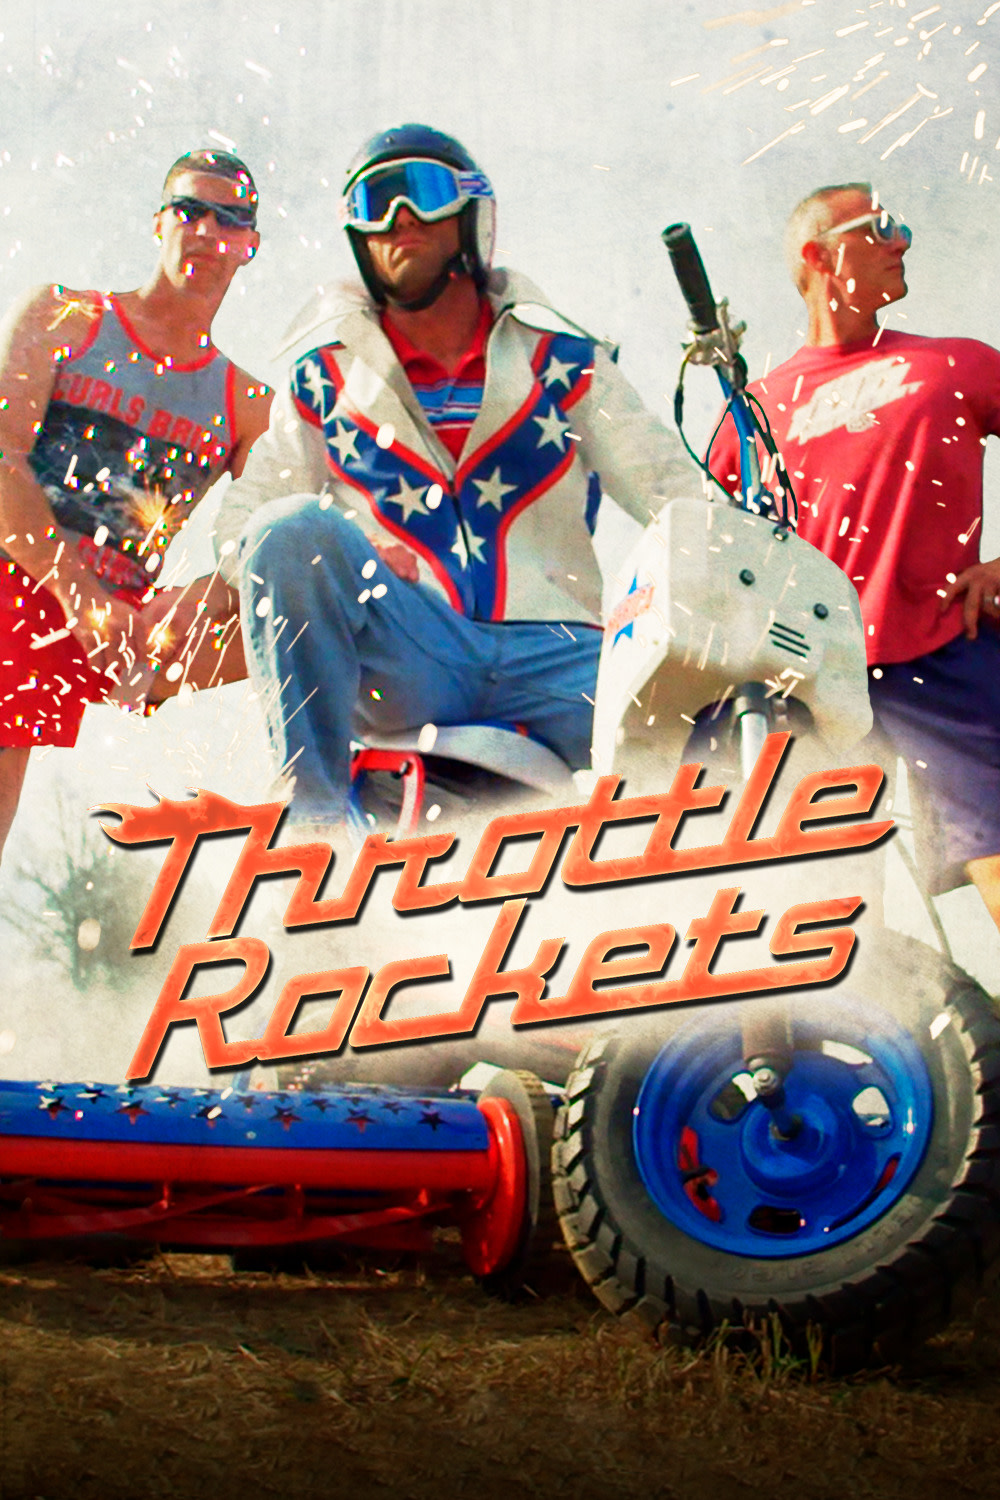 Throttle Rockets